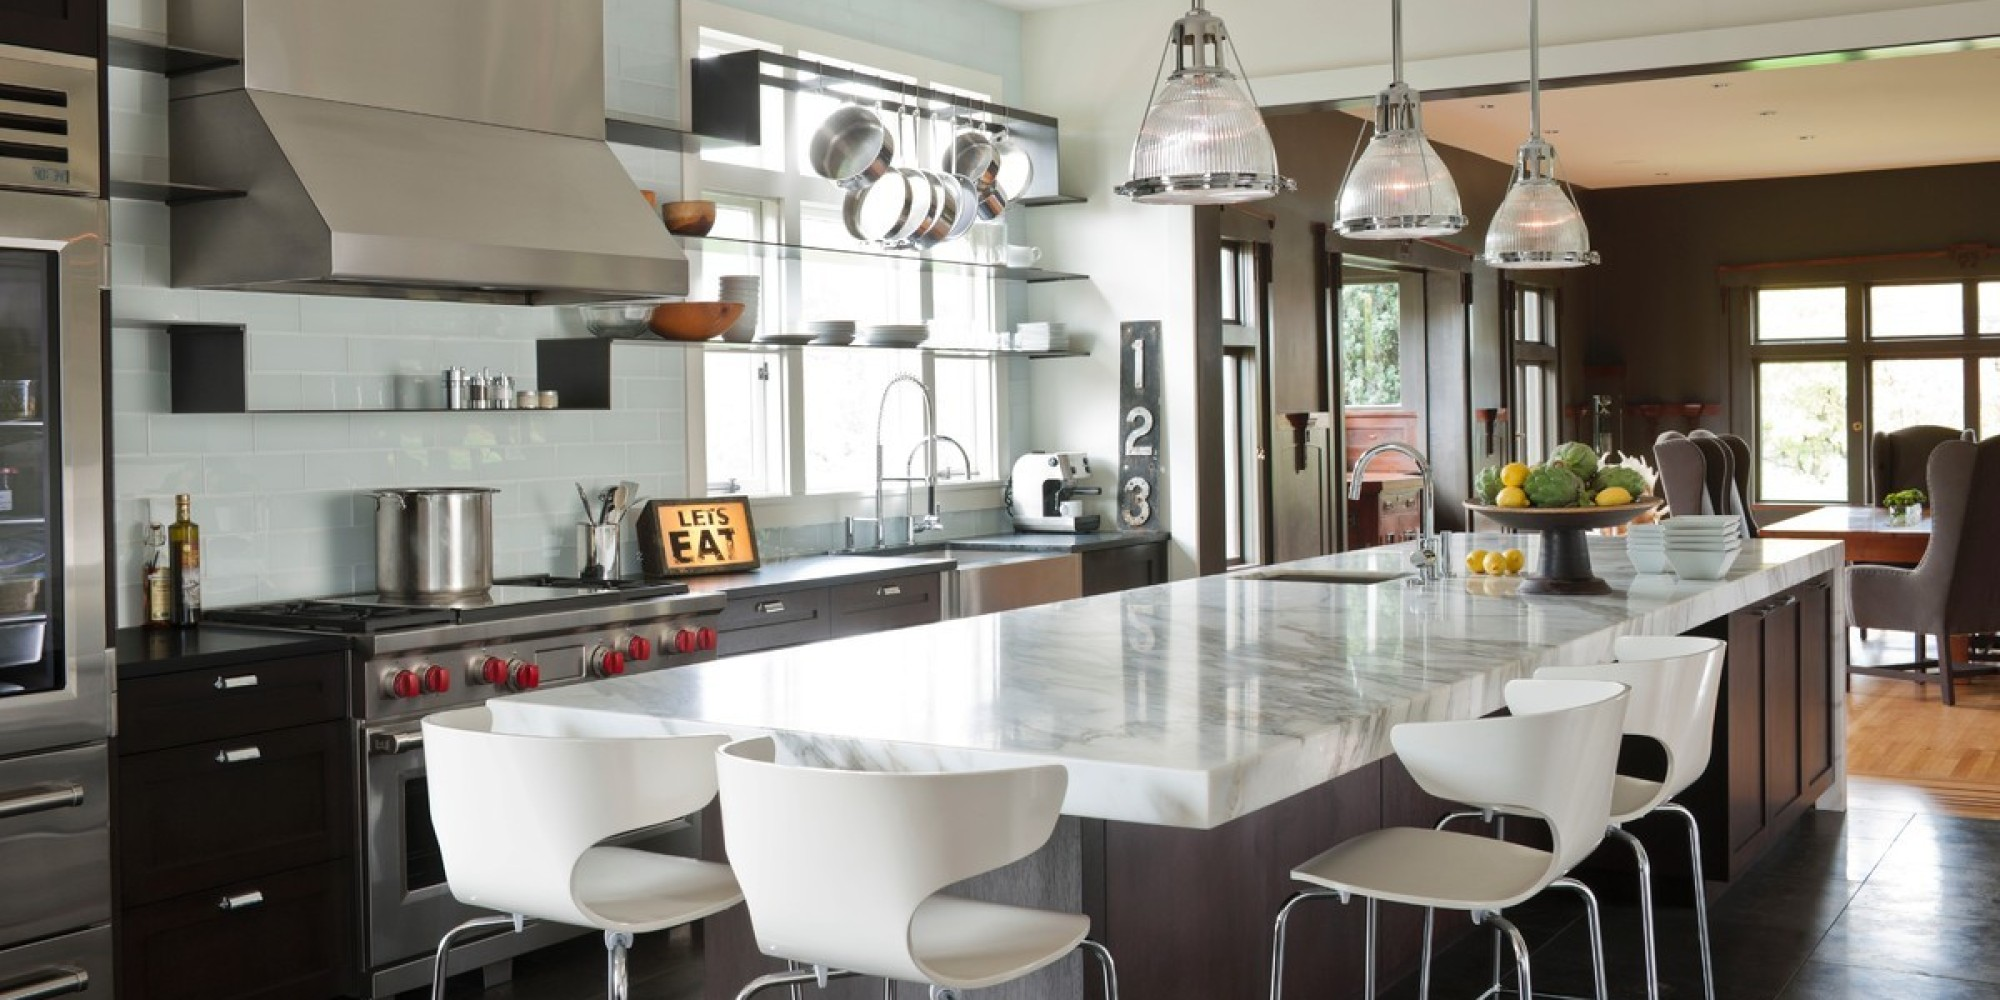 These 14 incredible kitchens are what dreams are made of for Gourmet kitchen designs